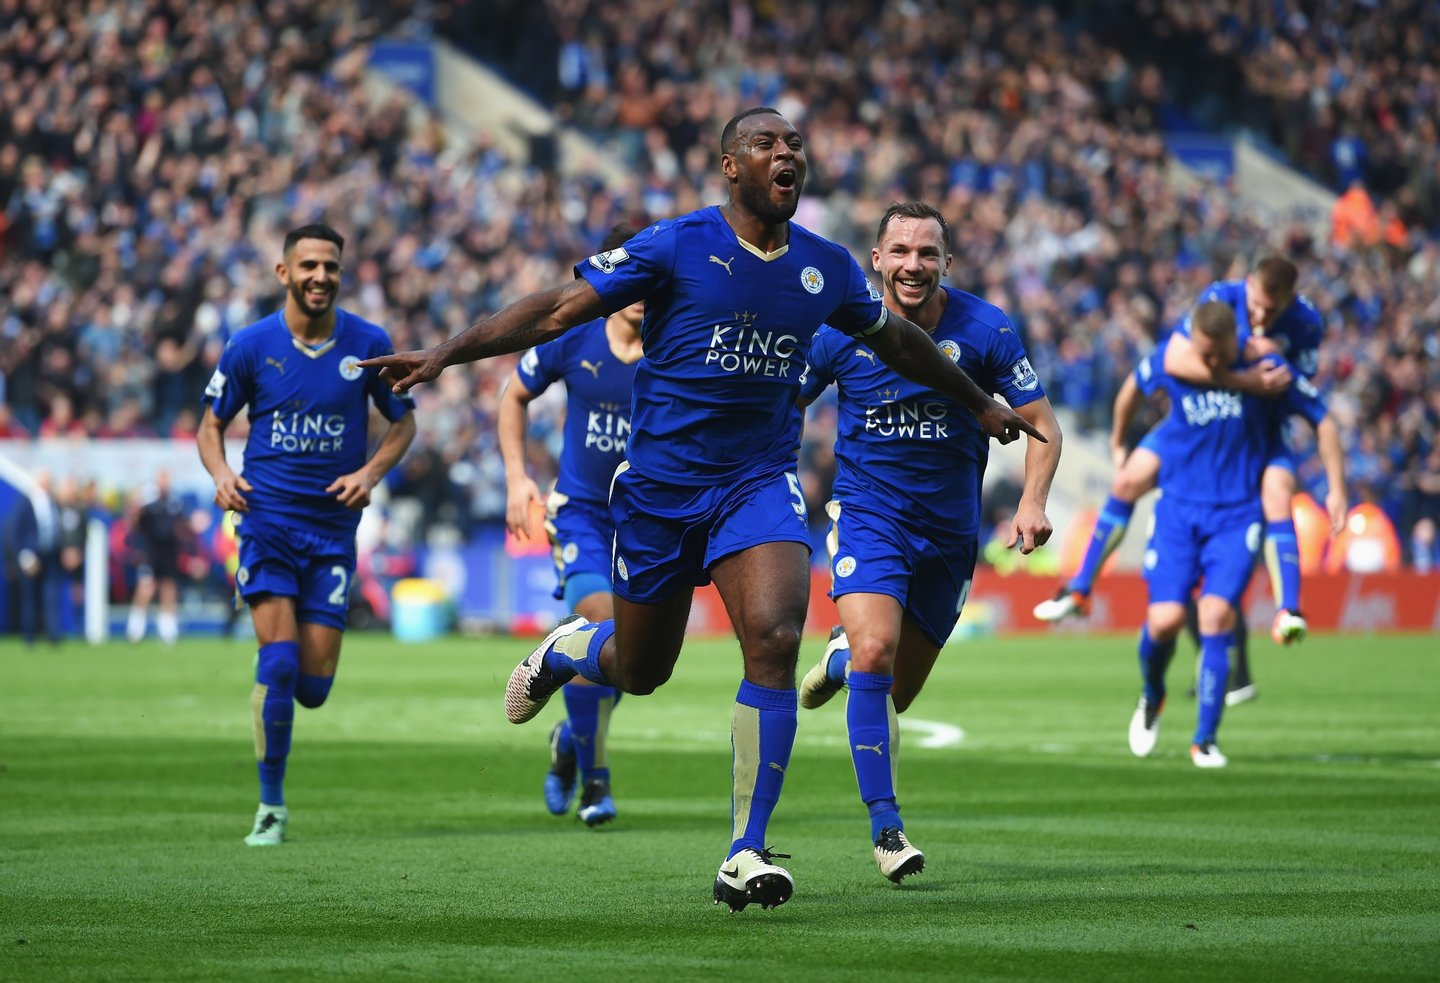 LEICESTER, ENGLAND - APRIL 03: Wes Morgan of Leicester City celebrates with team mates as he scores their first goal during the Barclays Premier League match between Leicester City and Southampton at The King Power Stadium on April 3, 2016 in Leicester, England. (Photo by Michael Regan/Getty Images)